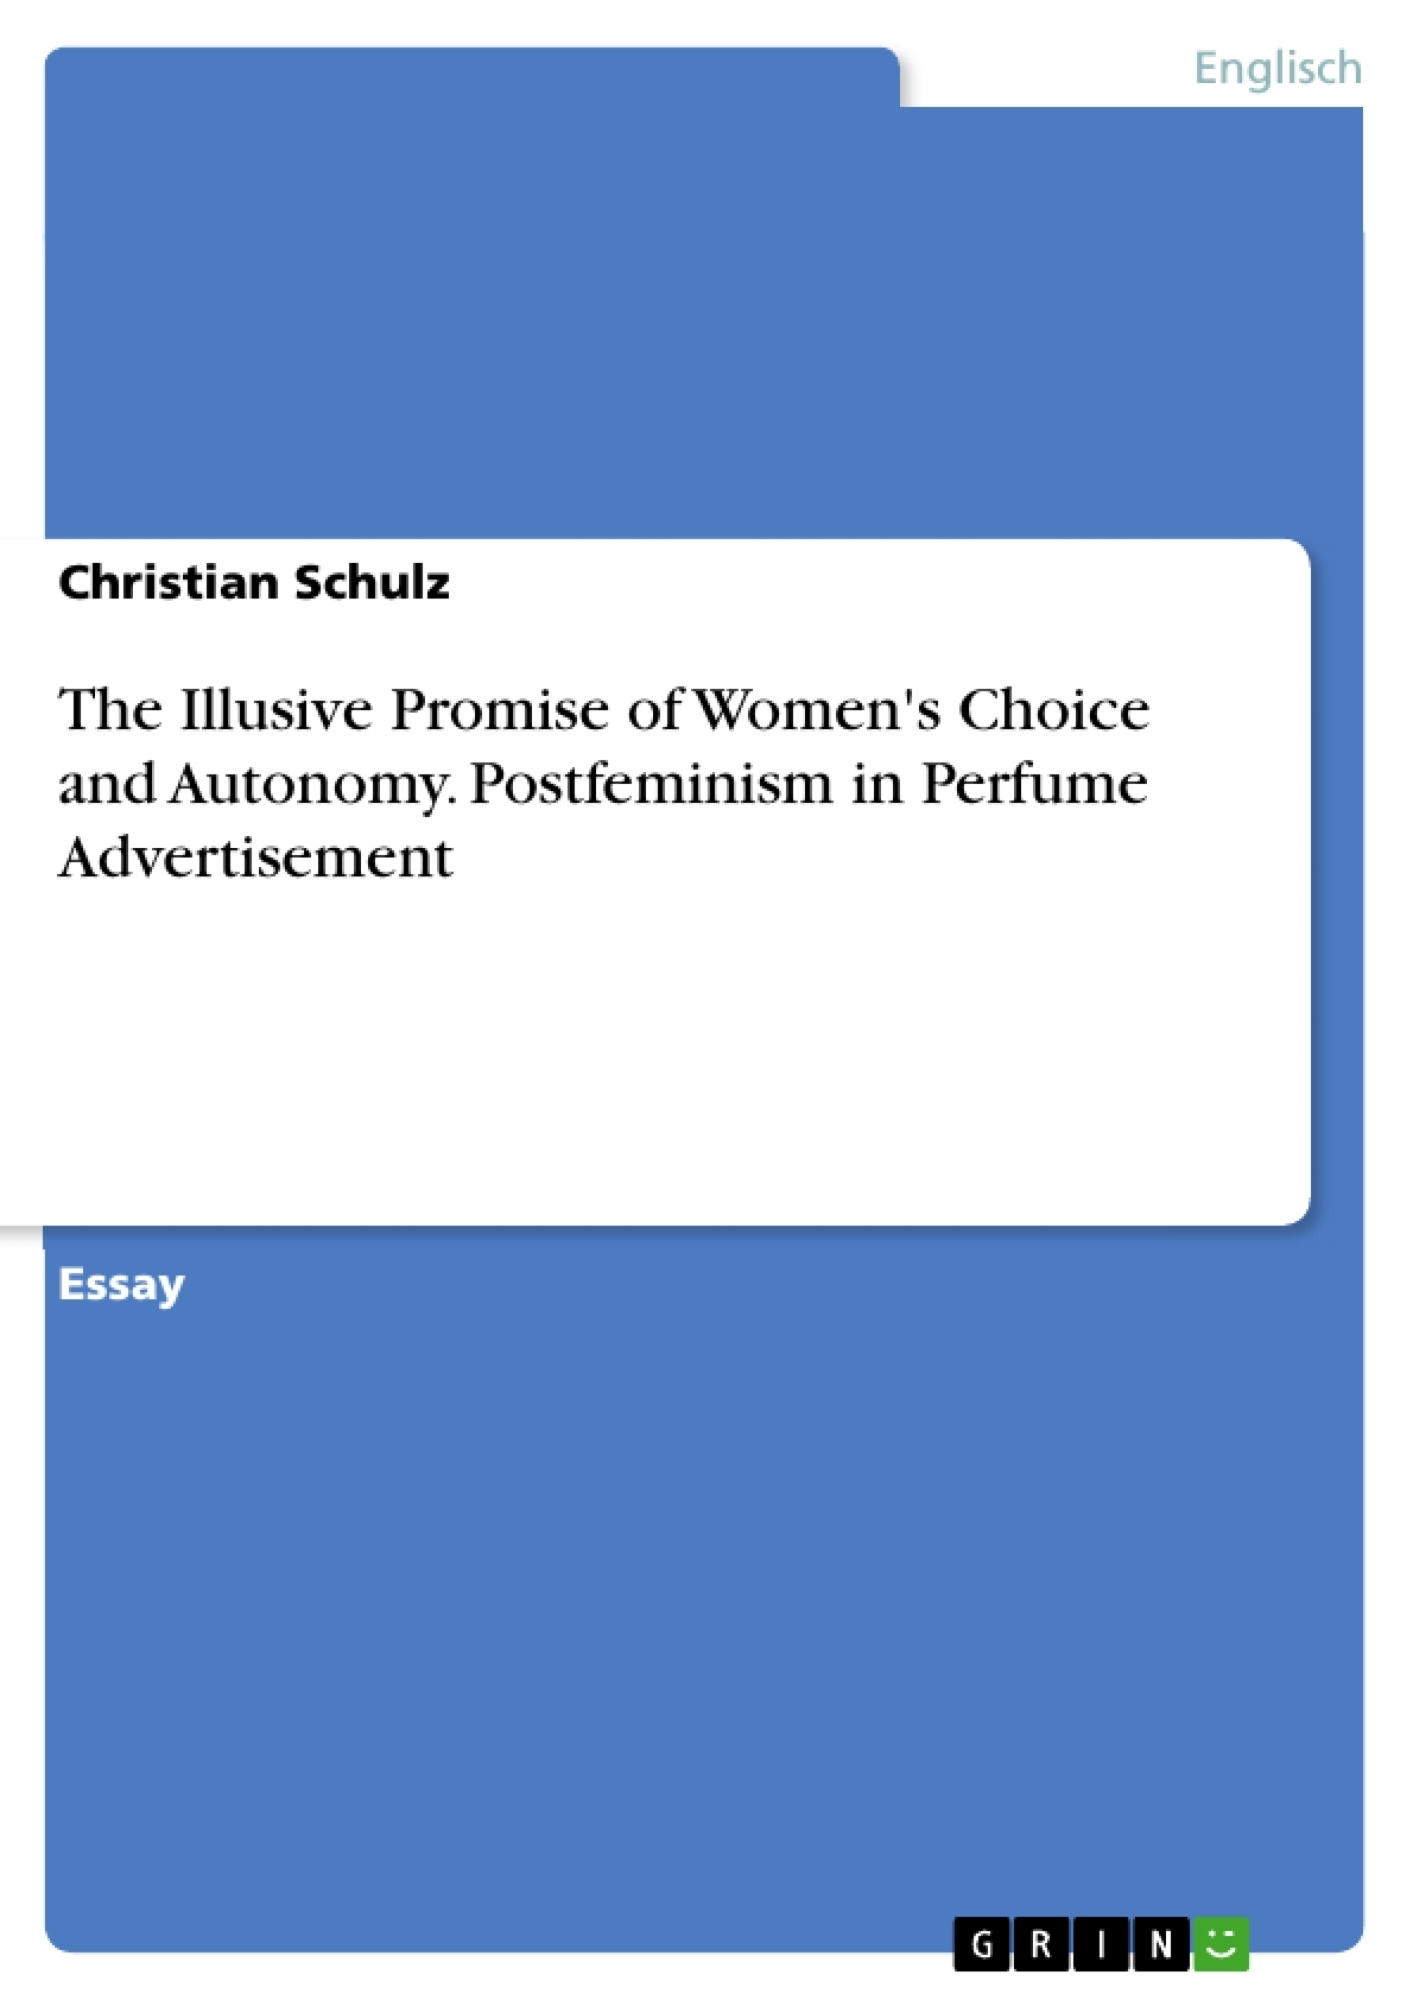 Titel: The Illusive Promise of Women's Choice and Autonomy. Postfeminism in Perfume Advertisement